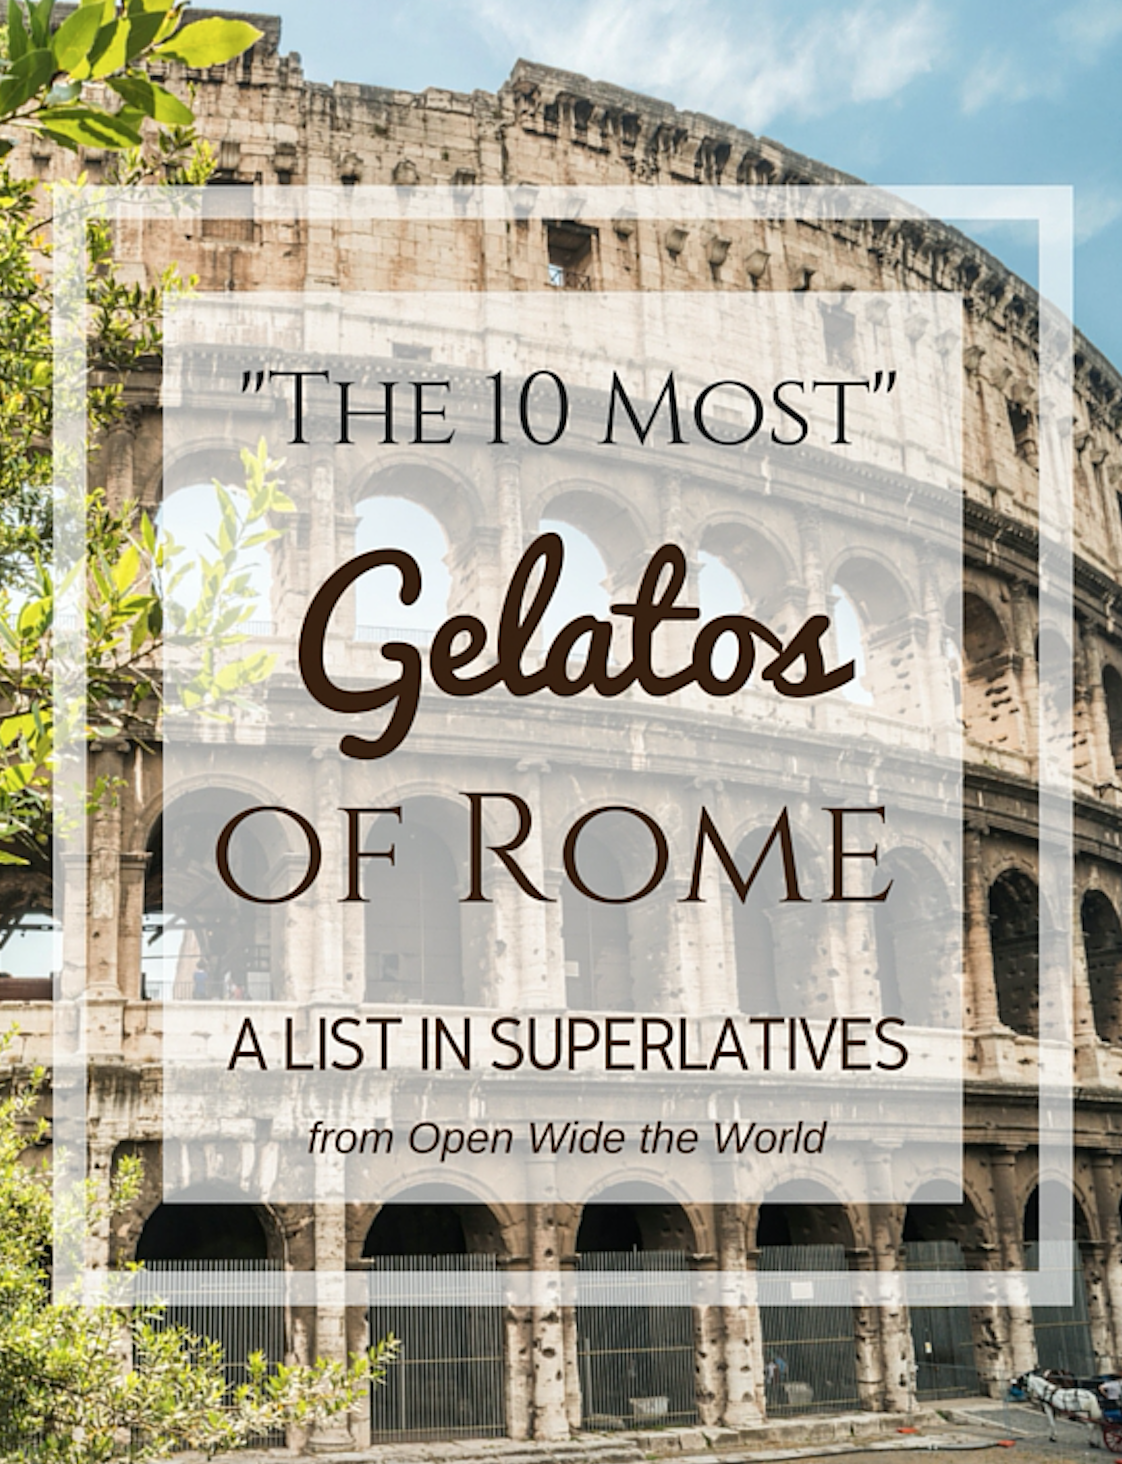 """Did you know? Italy has one gelateria for every 3,000 residents. That equates to more than 850 gelaterias in Rome alone!  So,where does a first time visitor to the Eternal City even begin to take on the modern empire that is gelato? With our """"10 Most..."""" Gelatos of Rome list!"""